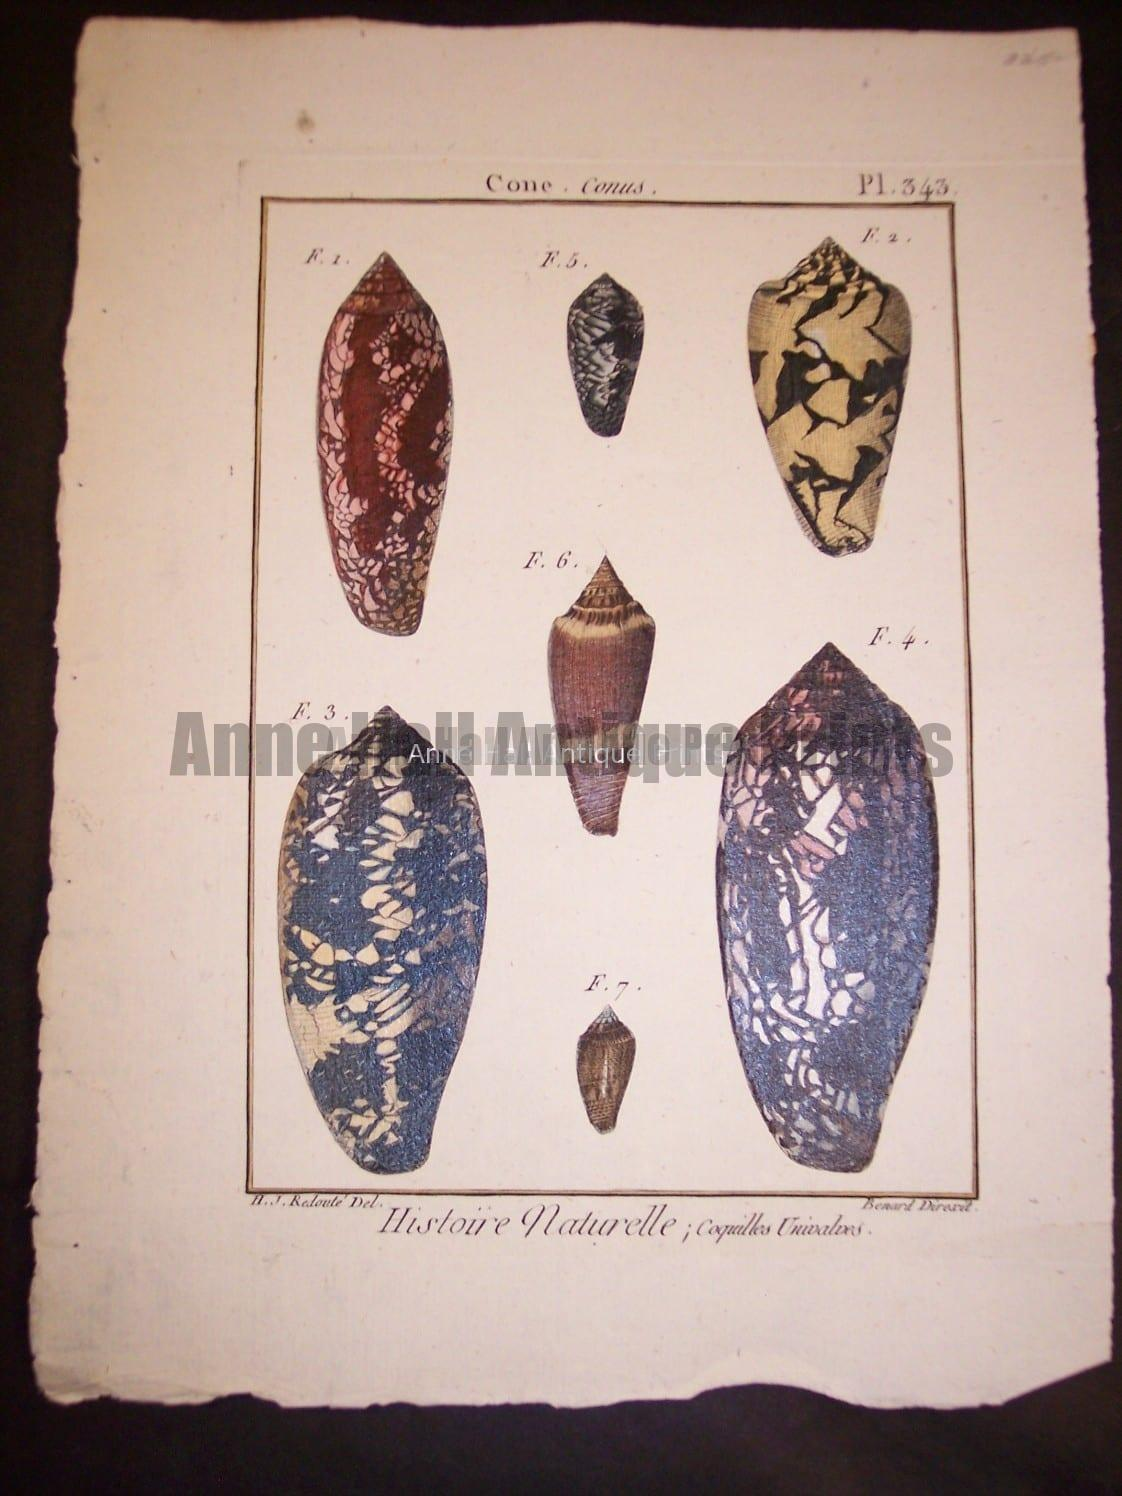 "These old sea shell prints date from 1779 to 1820. They were published by Lamarck in France. Numerous well known artists worked on this series including Marachel and PJ Redoute. These are stunning old copper plate engravings with water colors. They range in price from 125. to 225. each. and a discount on a set. Each print measures about 8x11"" These are stunning old copper plate engravings with water colors."